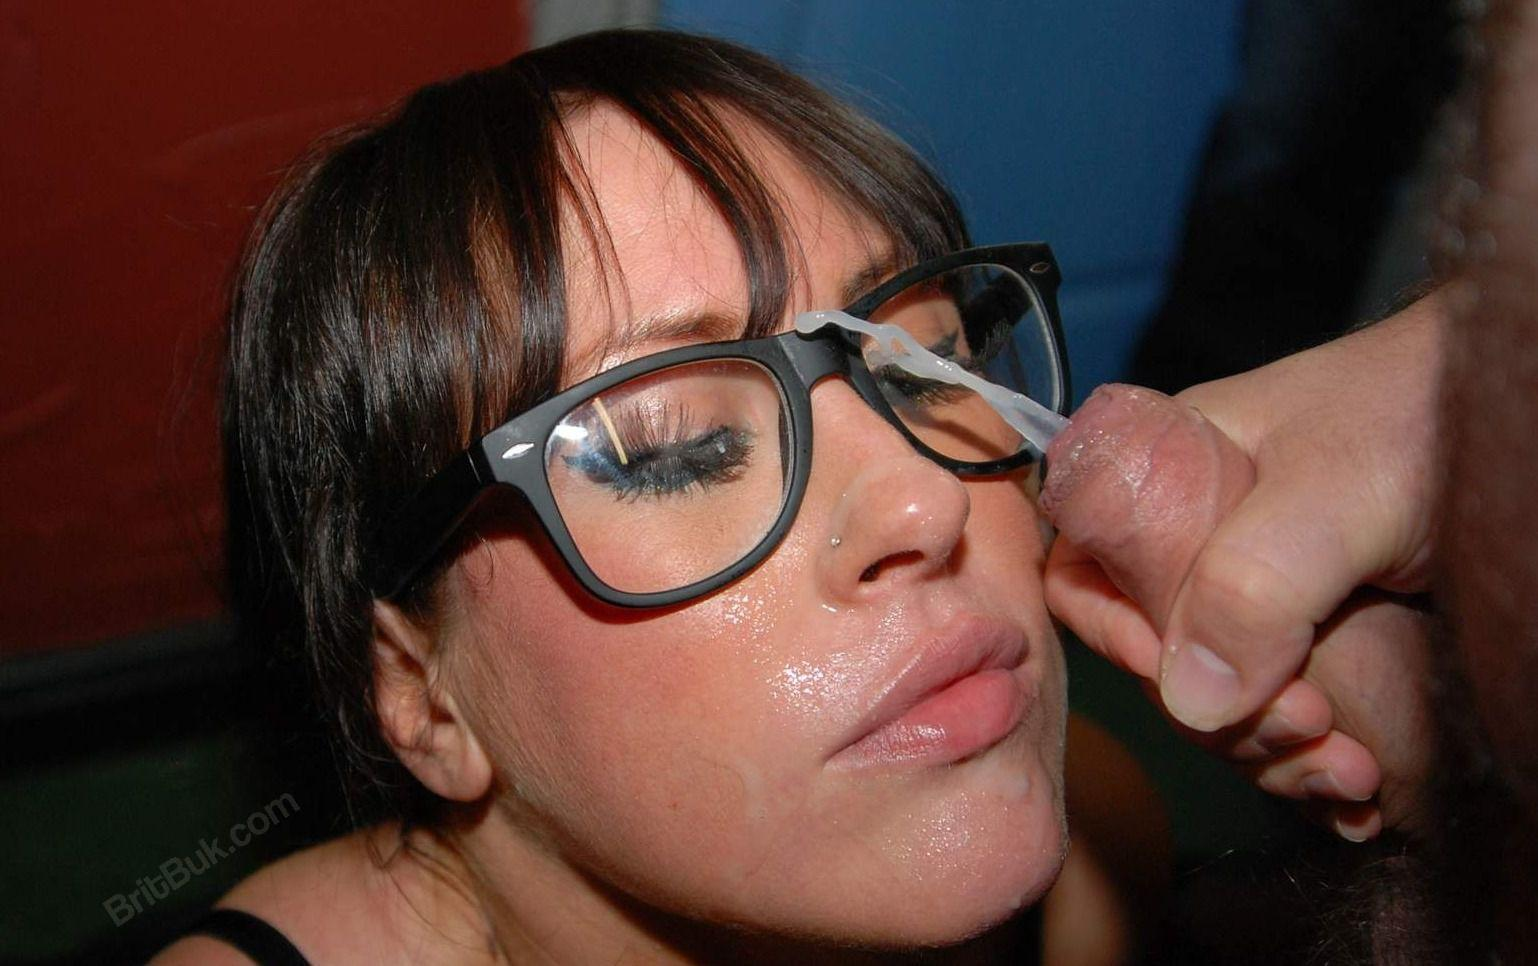 cum on her glasses